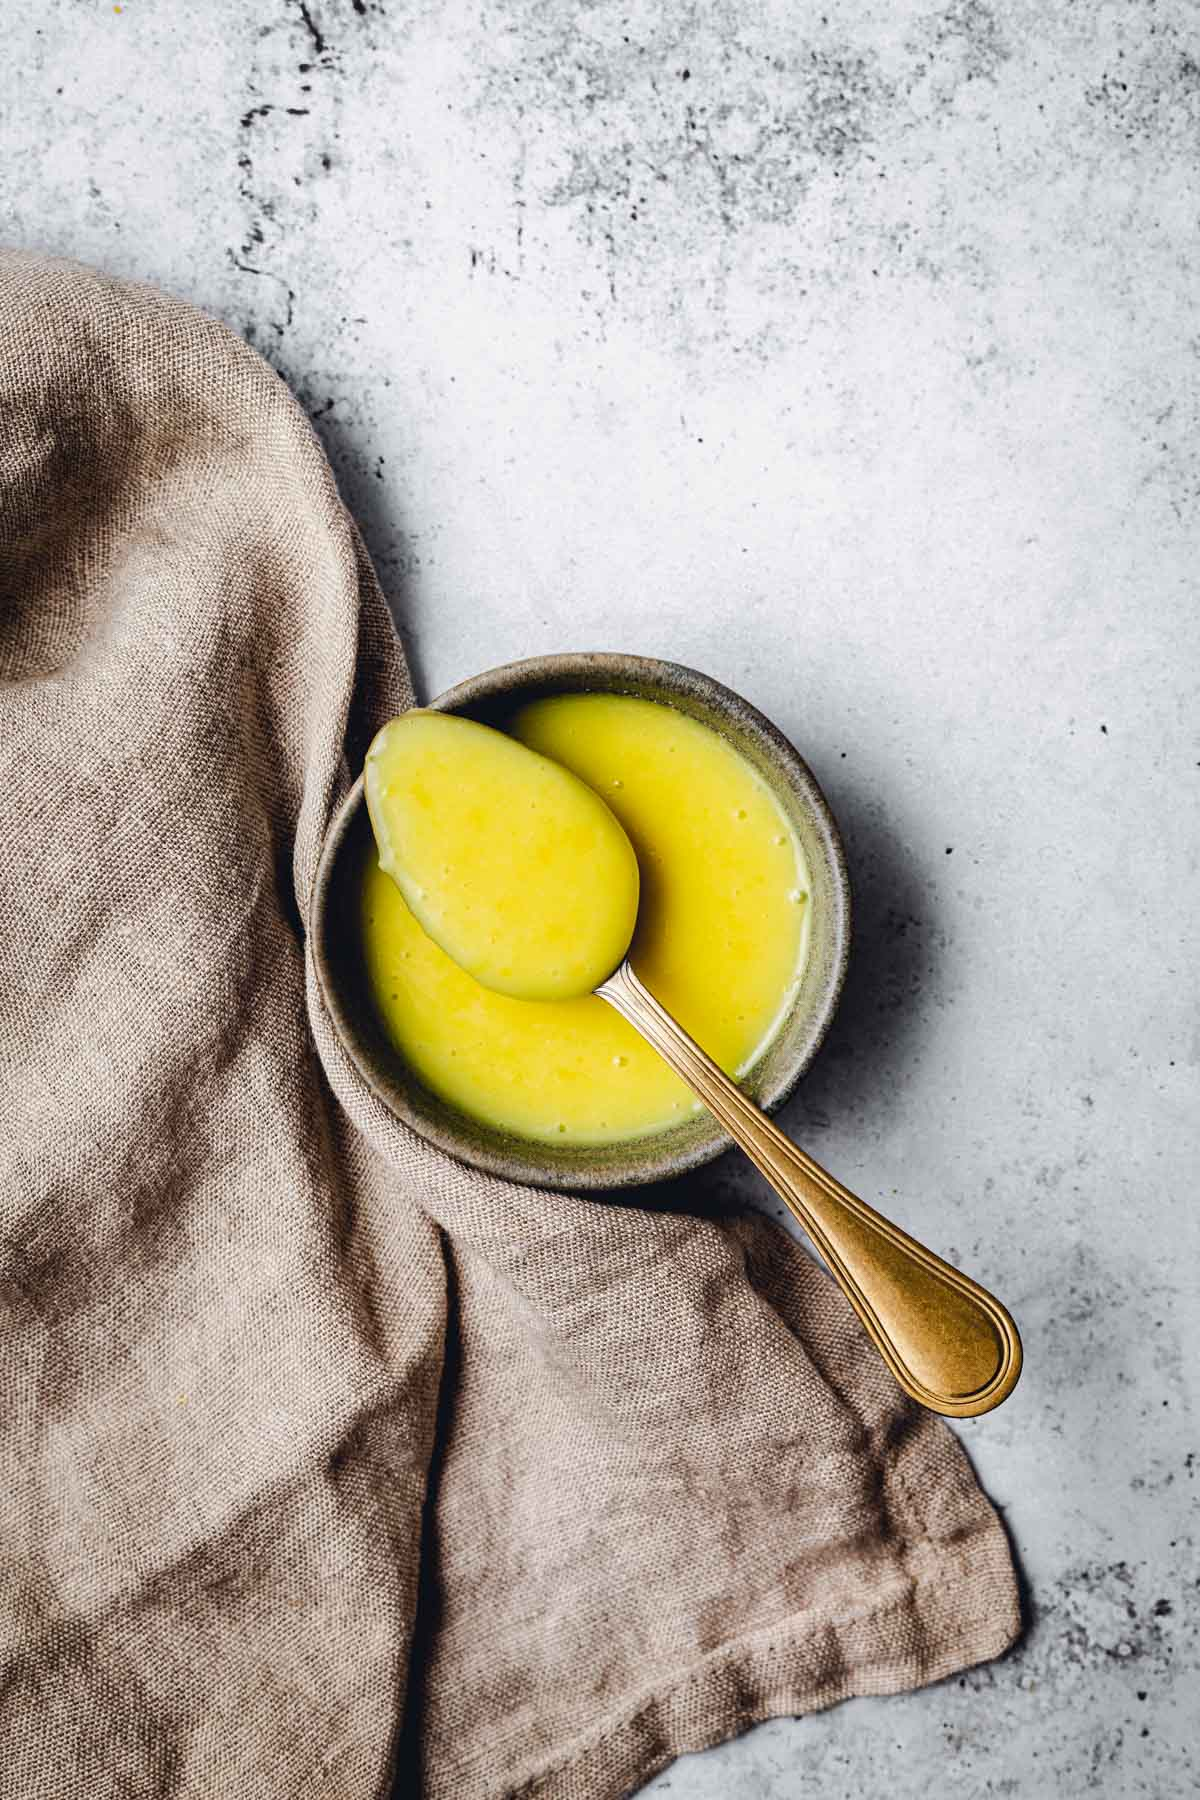 A small bowl containing lemon curd and a golden spoon with a piece of linen on the left side.